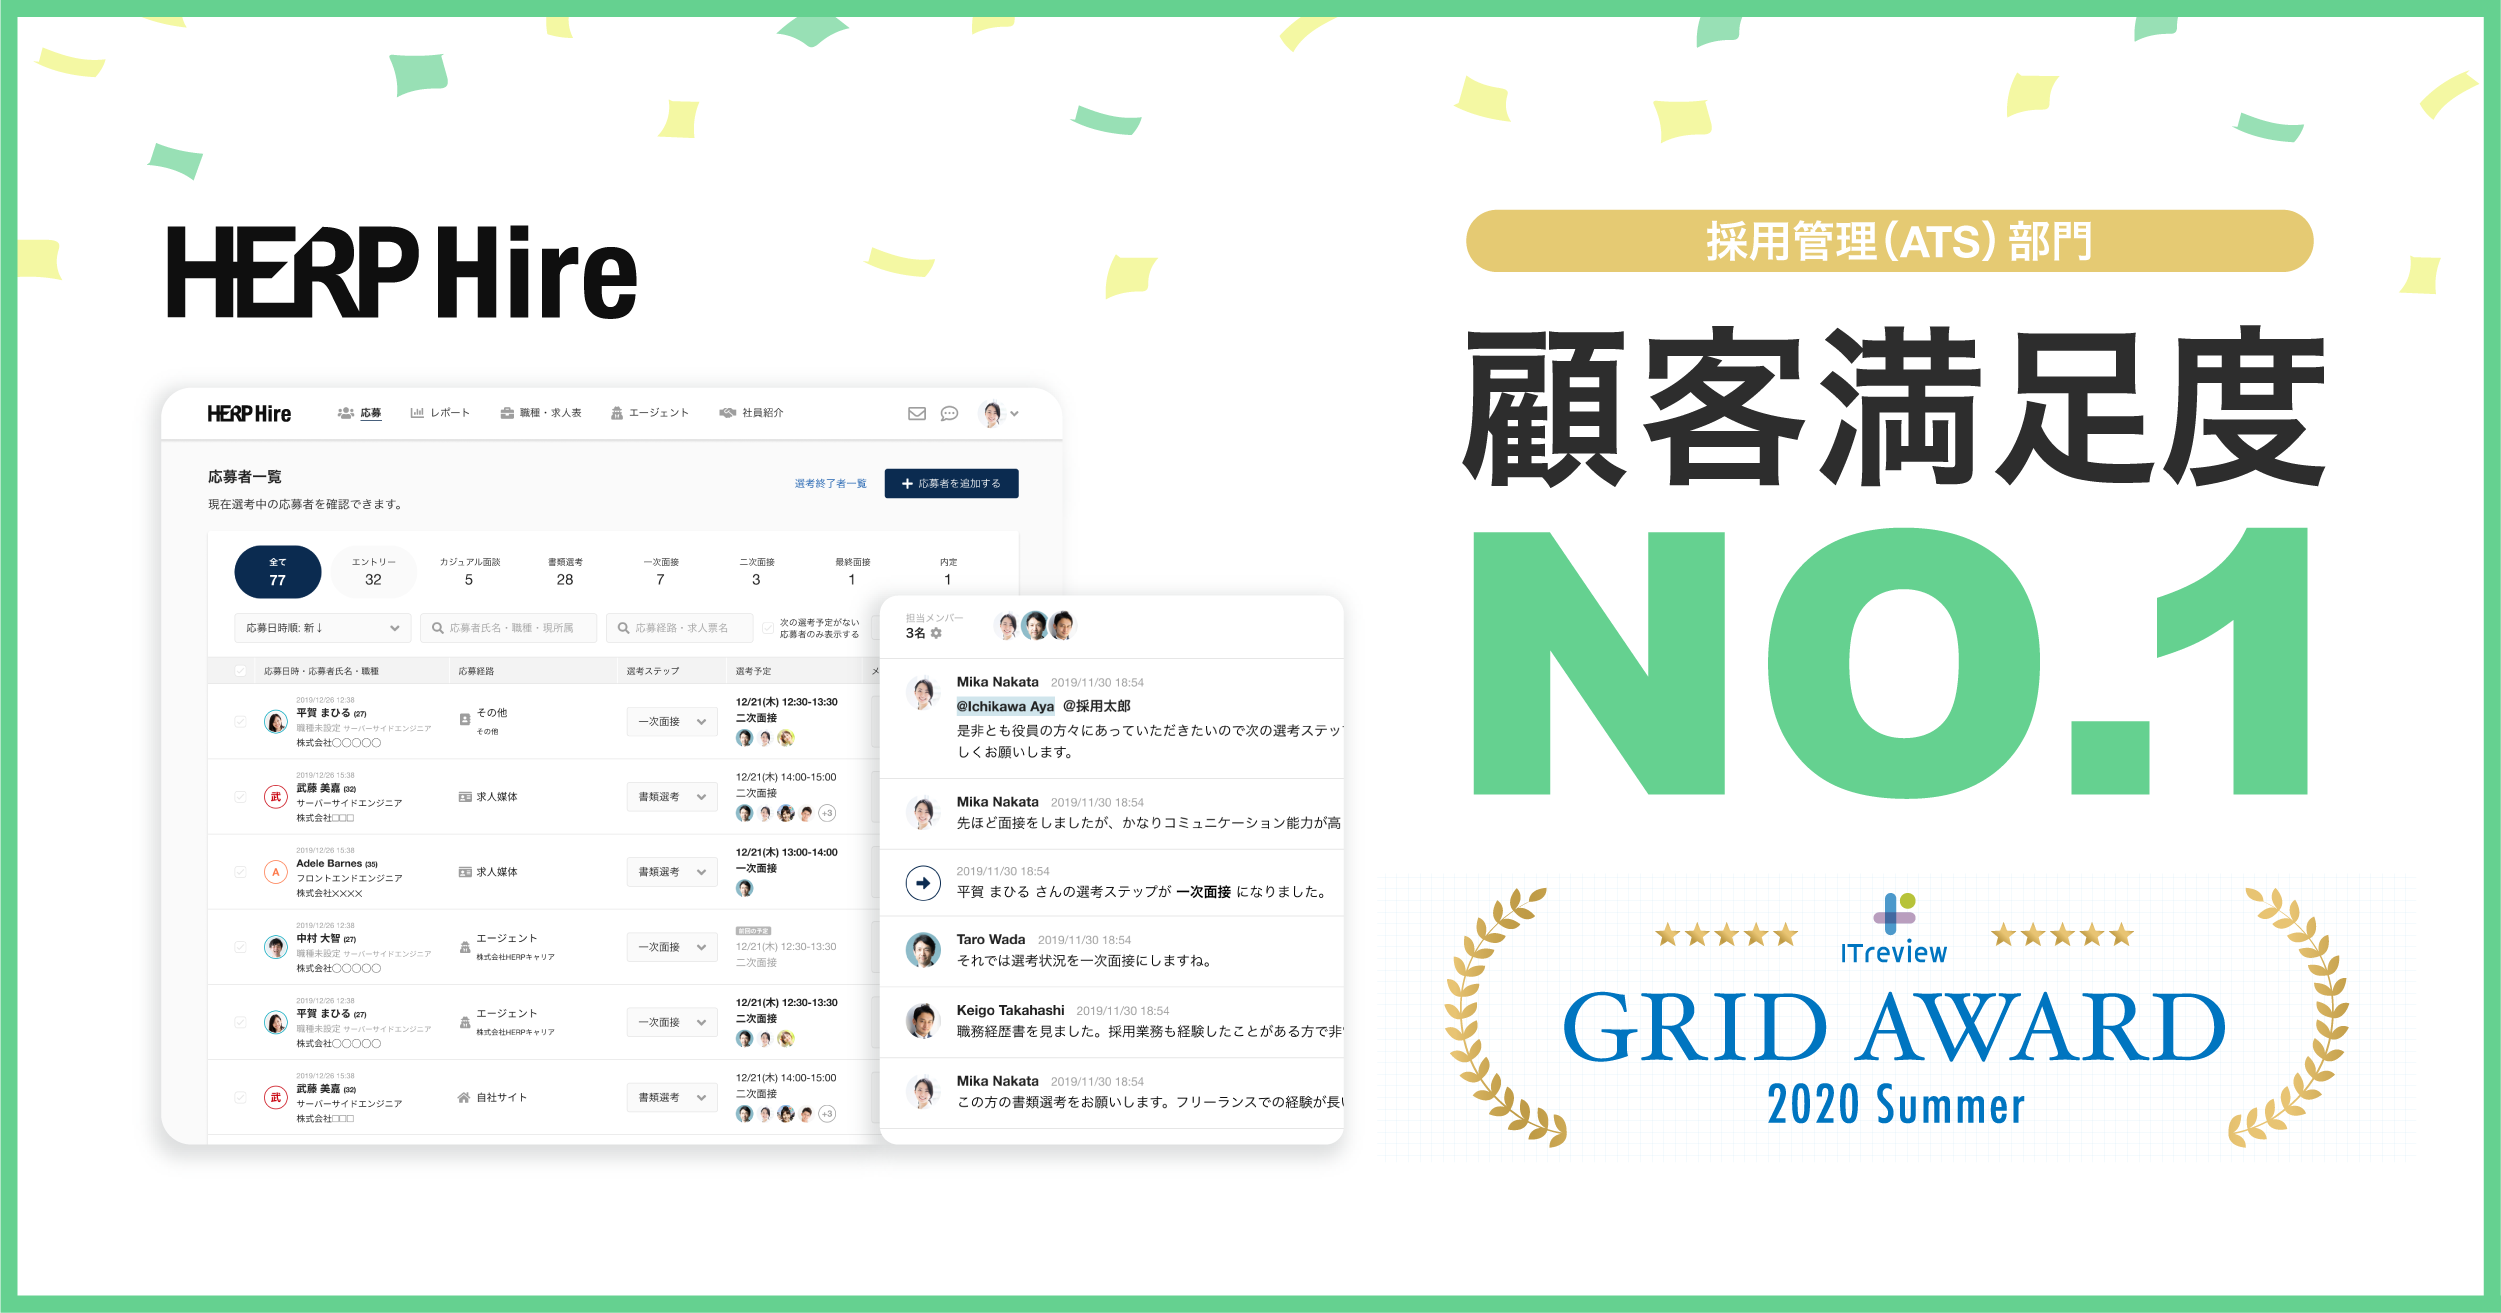 【HERP Hire】三季連続で「ITreview Grid Award」の採用管理(ATS)部門で顧客満足度No.1を獲得!